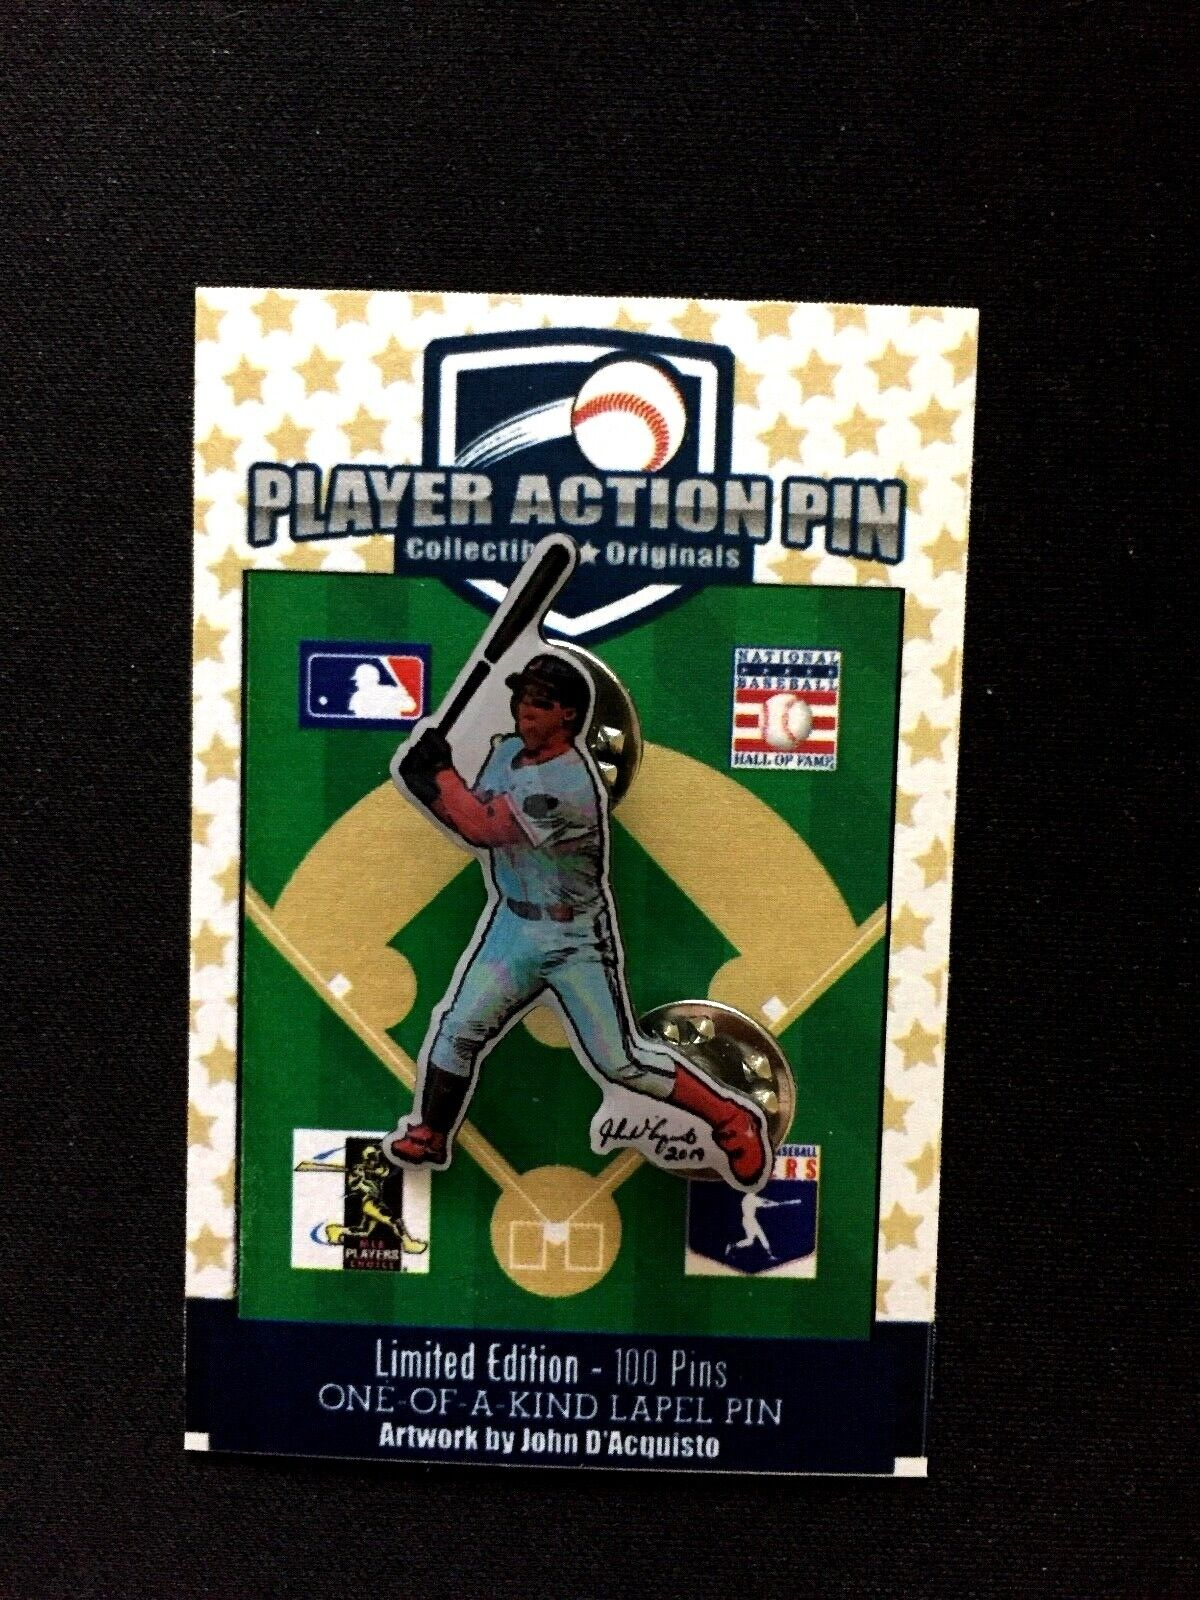 Cleveland Indians Jim Thome jersey lapel pin-Classic Collectible-HOF 2018